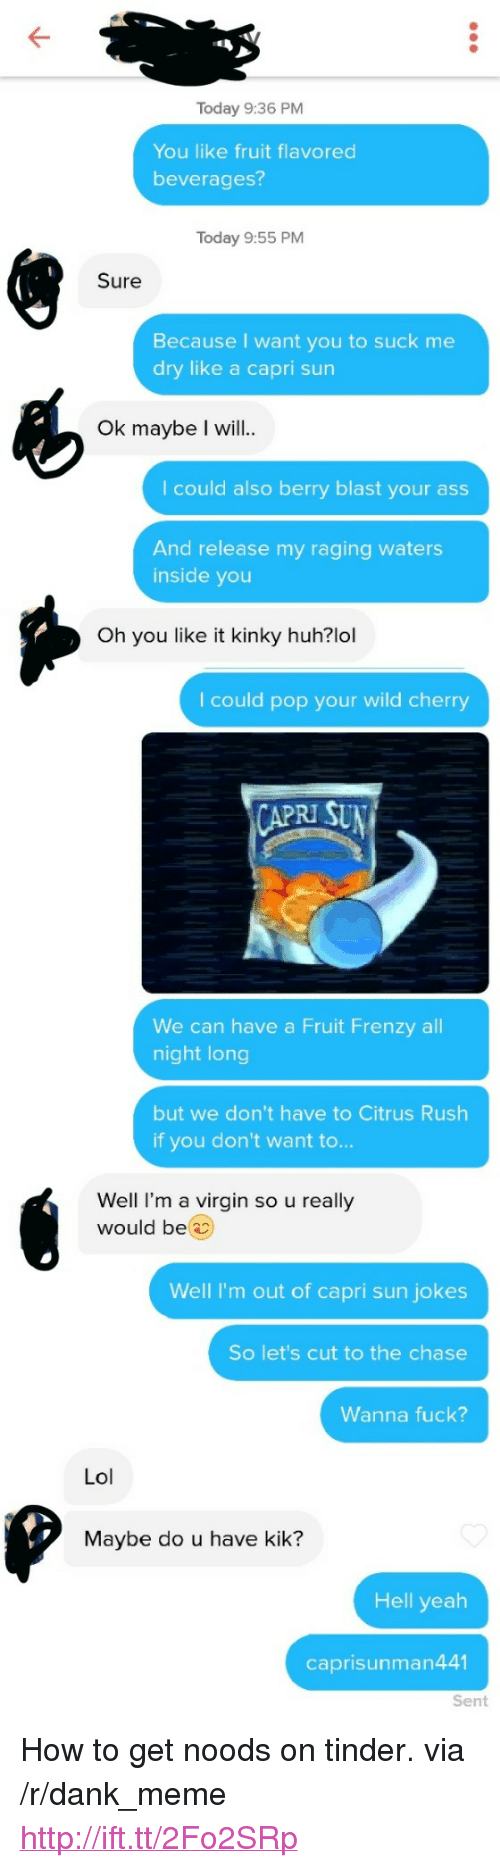 "kik: Today 9:36 PM  You like fruit flavored  beverages?  Today 9:55 PM  Sure  Because I want you to suck me  dry like a capri sun  Ok maybe I will..  I could also berry blast your ass  And release my raging waters  inside you  Oh you like it kinky huh?lol  I could pop your wild cherry  RI SU  We can have a Fruit Frenzy all  night long  but we don't have to Citrus Rush  if you don't want to...  Well I'm a virgin so u really  would be  Well I'm out of capri sun jokes  So let's cut to the chase  Wanna fuck?  Lol  Maybe do u have kik?  Hell yeah  caprisunman441  Sent <p>How to get noods on tinder. via /r/dank_meme <a href=""http://ift.tt/2Fo2SRp"">http://ift.tt/2Fo2SRp</a></p>"